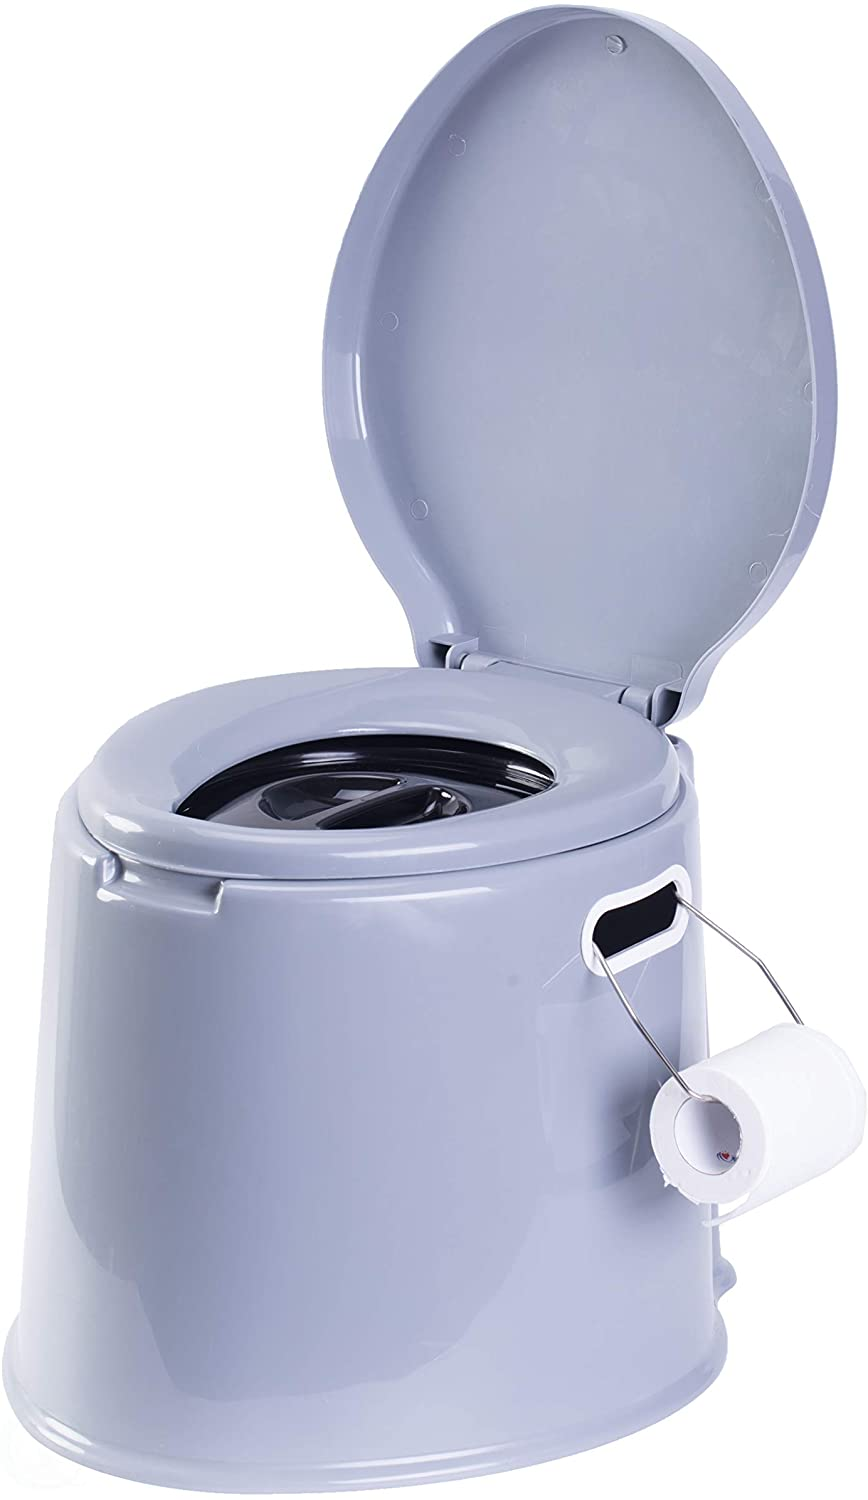 """PLAYBERG Portable Indoor & Outdoor Travel Toilet for Camping and Hiking Indore 8 Gallon Waste Tank, Grey, 17"""" W x 16"""" D x 14"""" H (QI 003241 NEW)"""